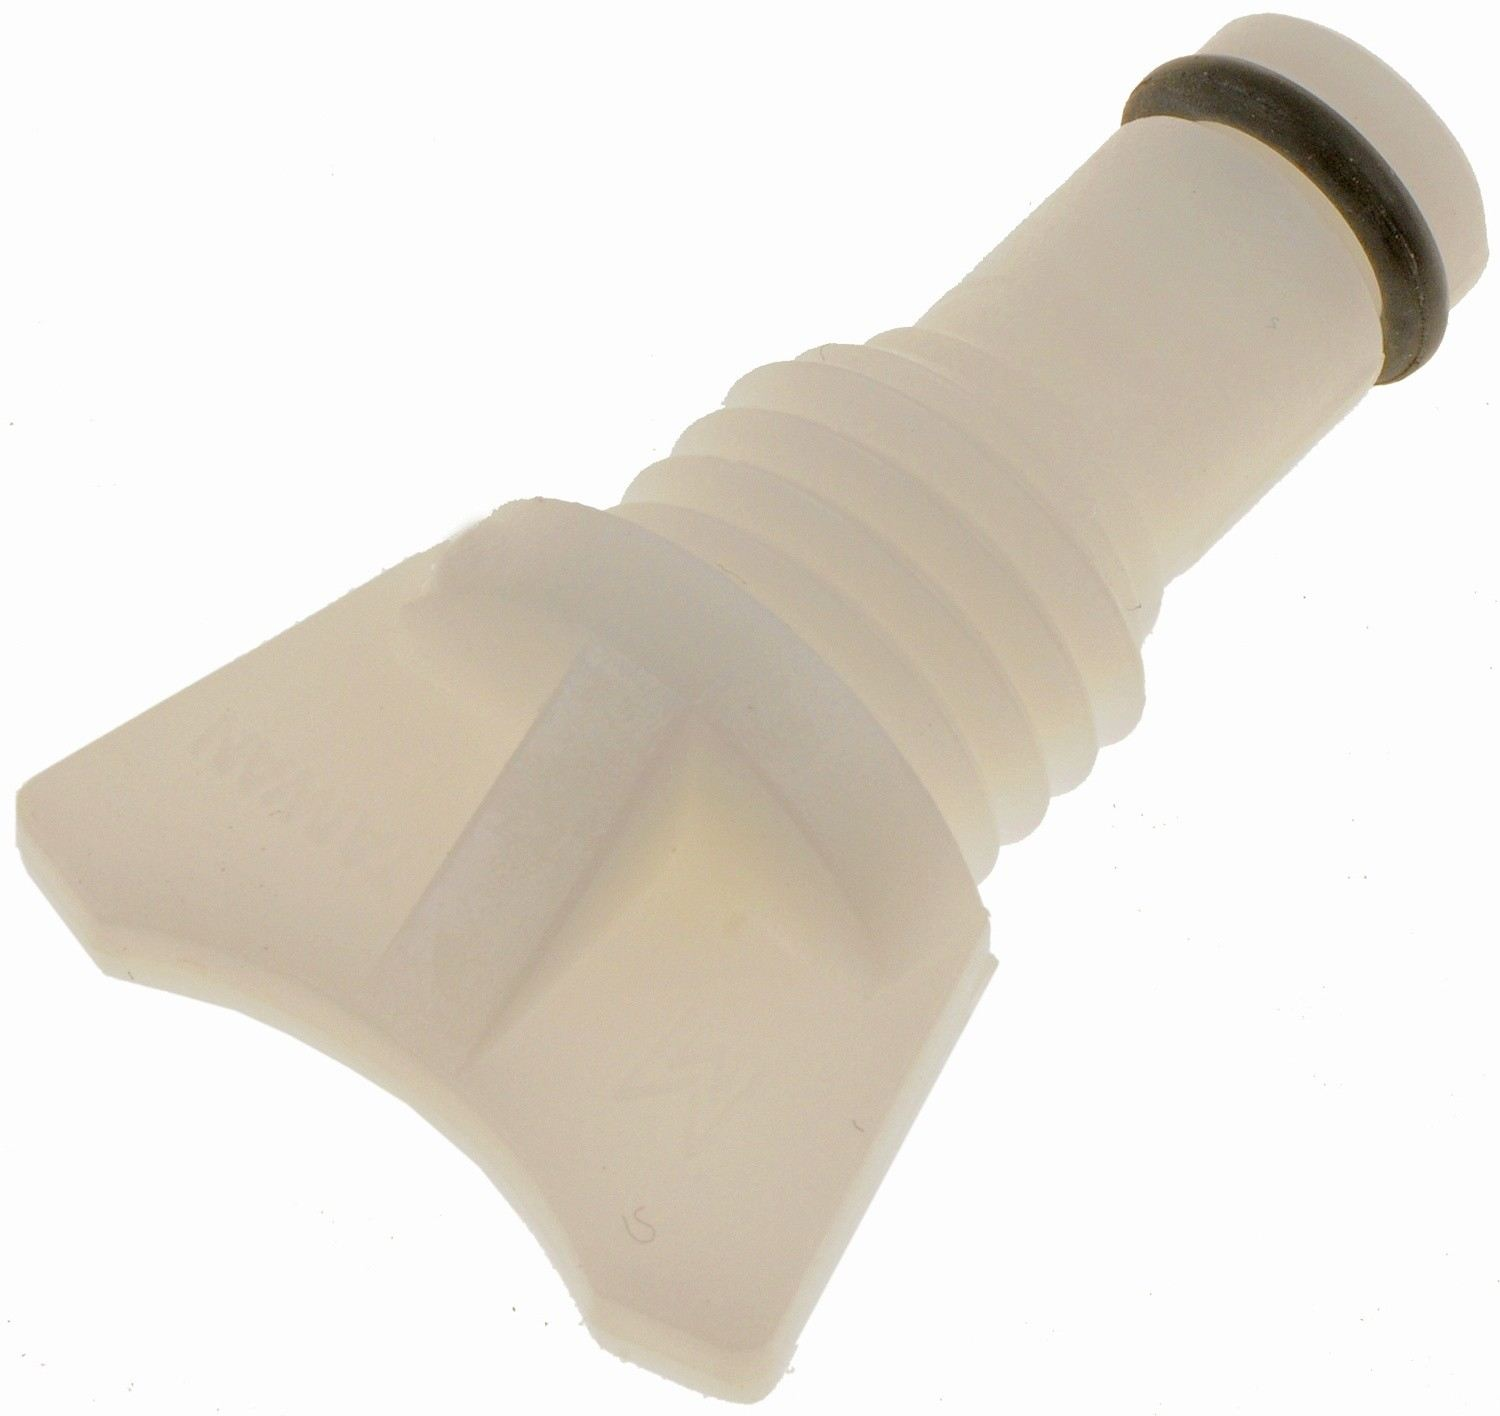 DORMAN - AUTOGRADE - Radiator Drain Petcock - DOC 490-216.1